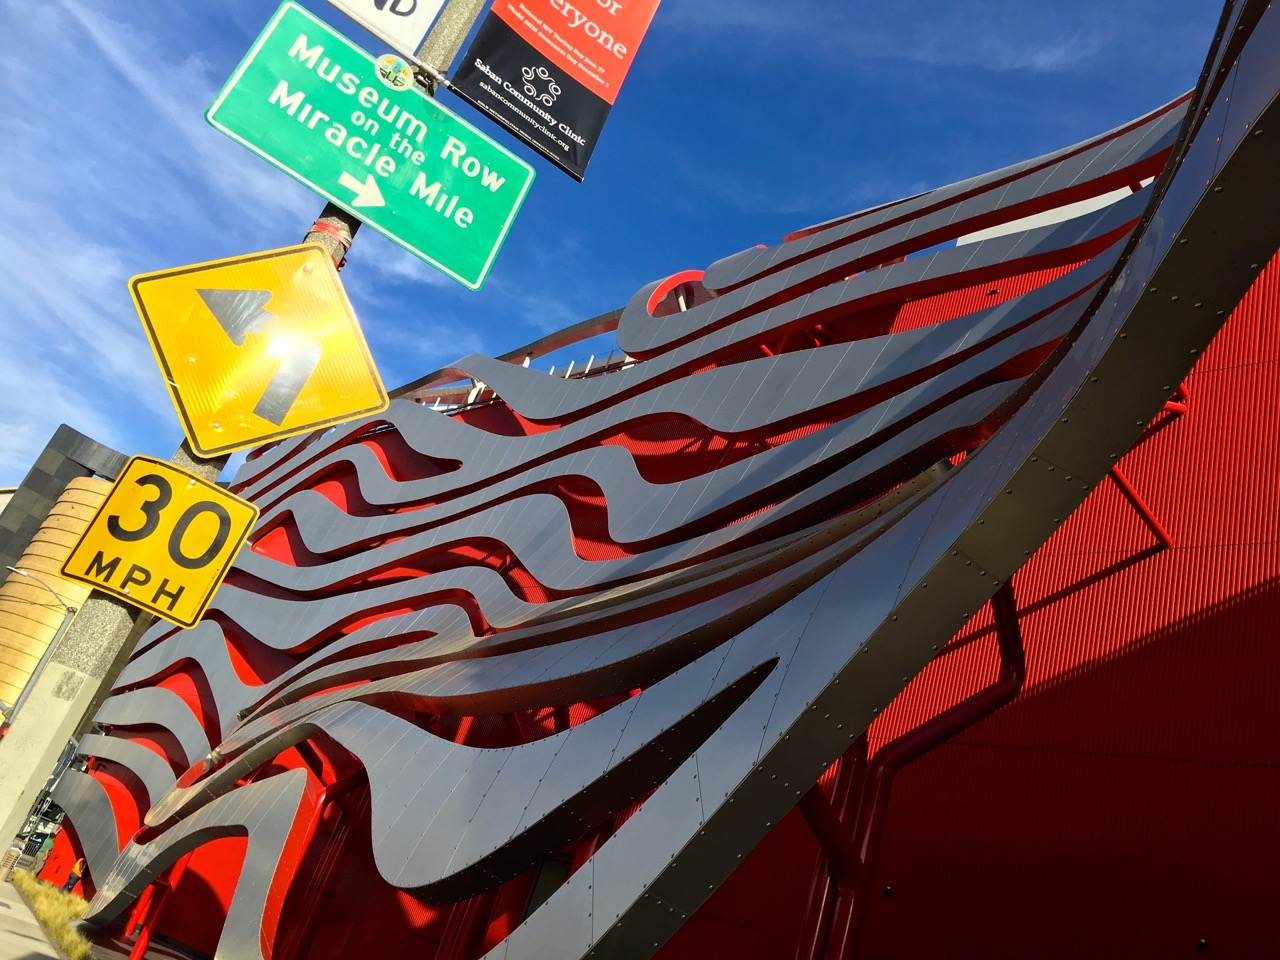 The Petersen Automotive Museum on Museum Row in Los Angeles. Museum Row is the stretch of Wilshire Boulevard that extends between Fairfax Avenue and La Brea Avenue.